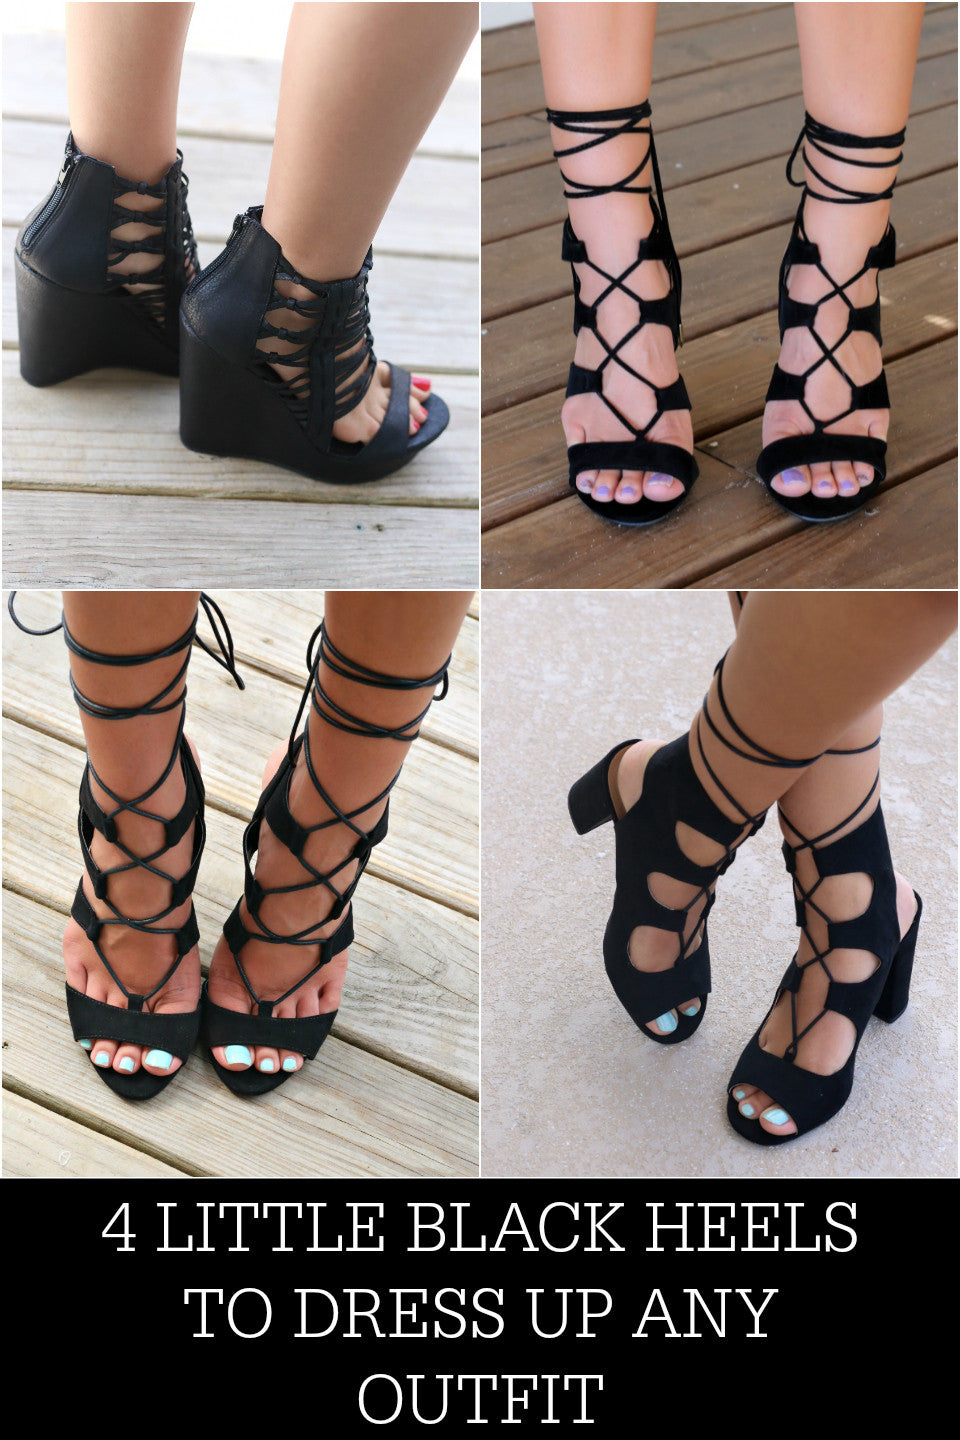 4 Little Black Heels To Dress Up Any Outfit